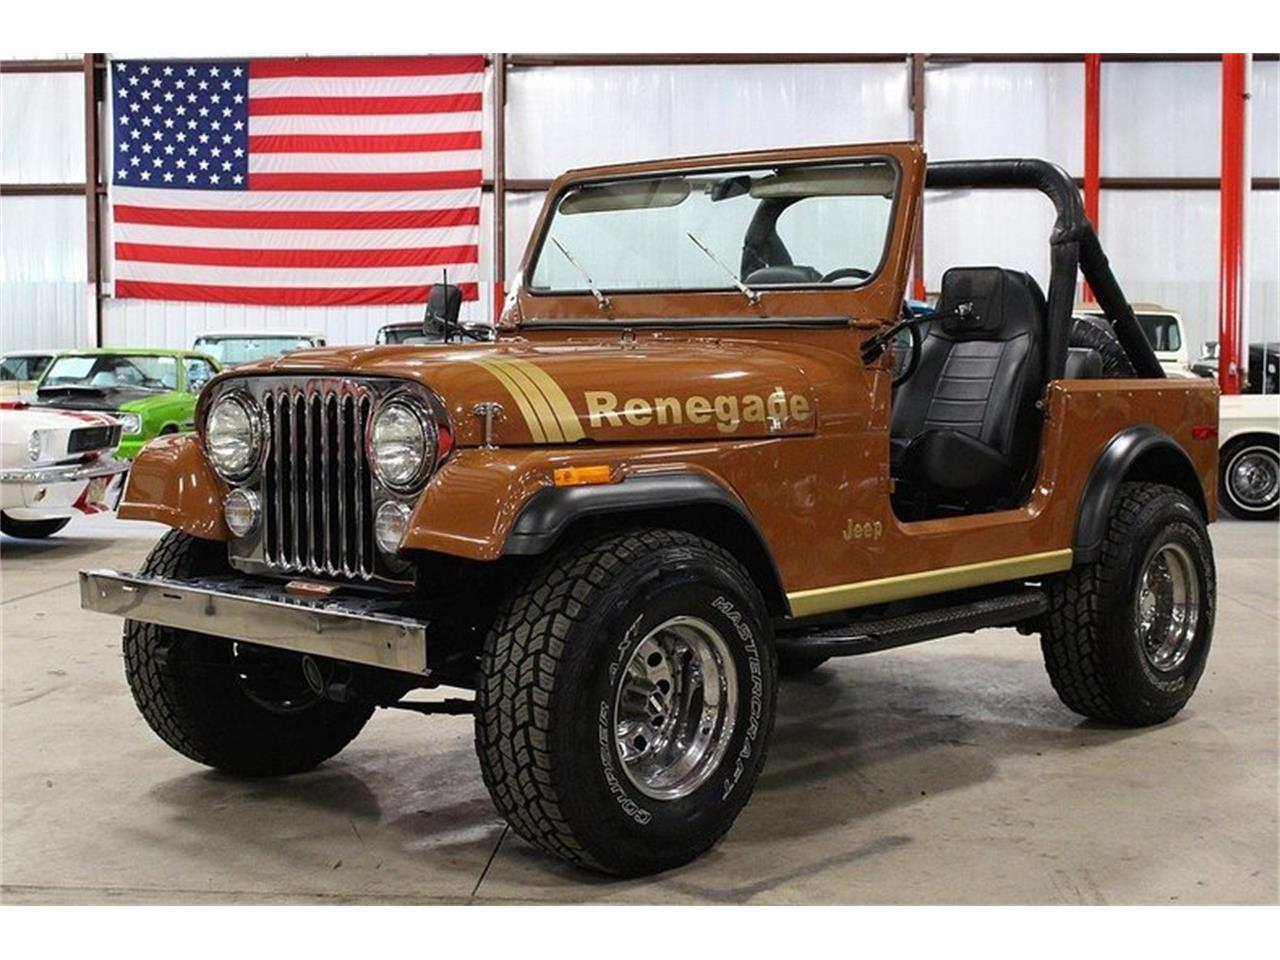 1980 Jeep Cj7 For Sale Cc 908684 Old Renegade Large Picture Of 80 Located In Kentwood Michigan 1990000 Jh58